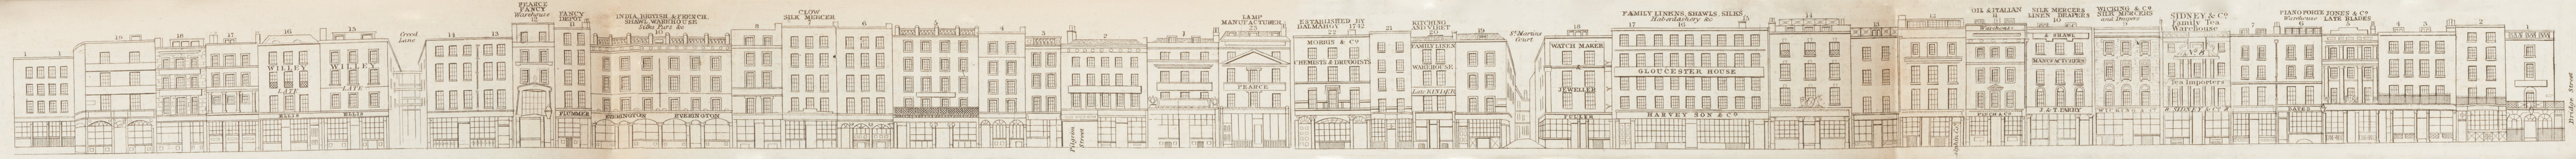 map - Tallis's London street views : No. 6. Ludgate Hill and Ludgate Street (south)